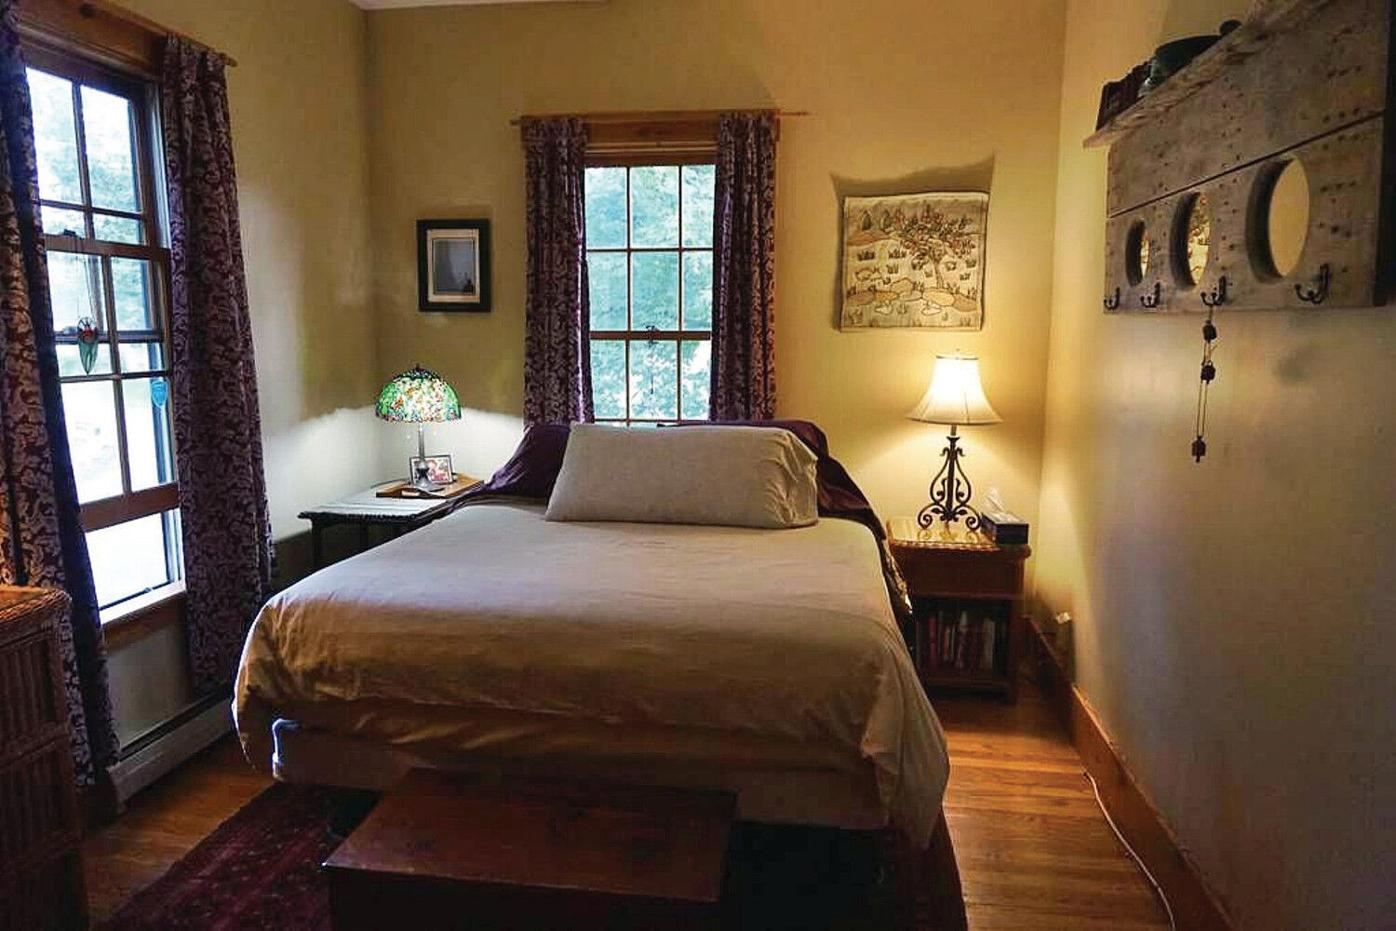 Berkshire Business Outlook: How one room becomes a business Airbnb takes root in the Berkshires